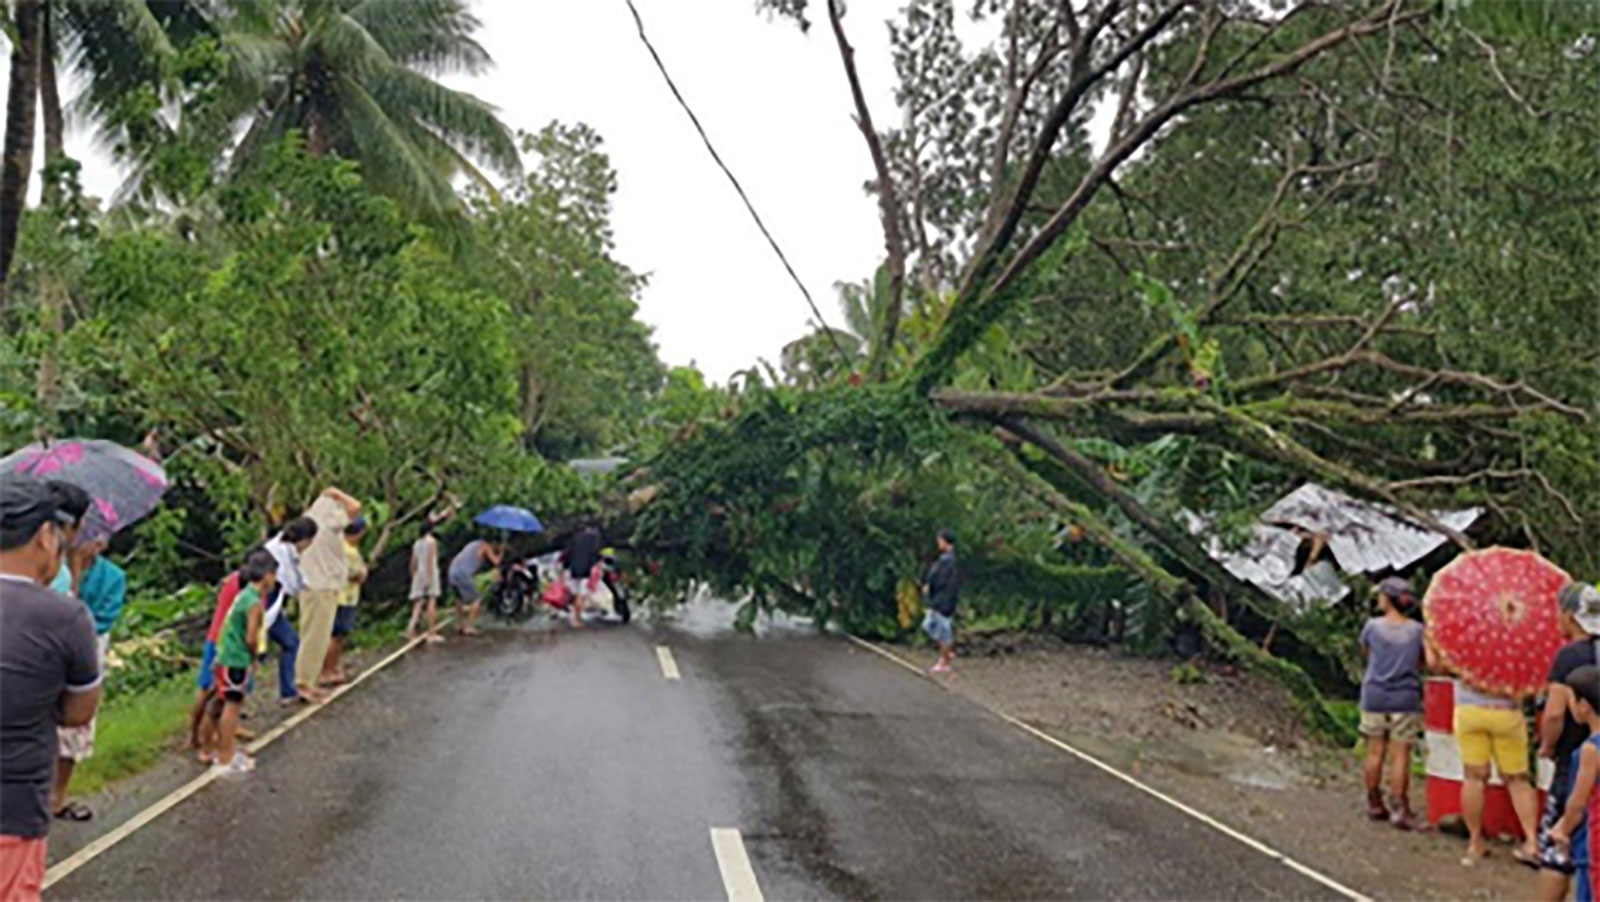 Philippines: Typhoon Mangkhut | HI emergency specialists arrive in affected areas